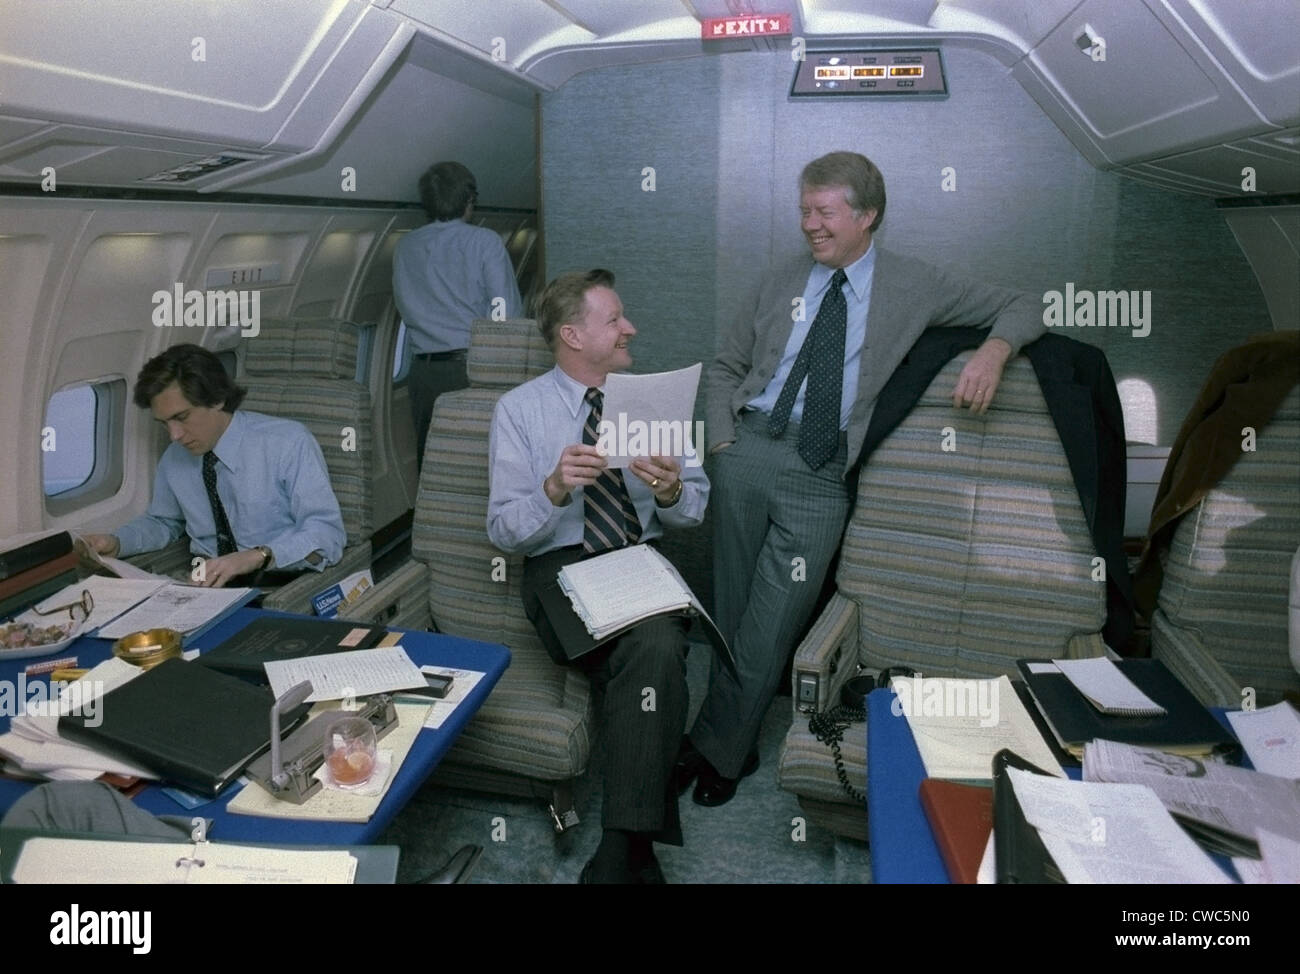 Zbigniew Brzezinski and Jimmy Carter in a relaxed discussion aboard Air Force One while an young staffer works in - Stock Image